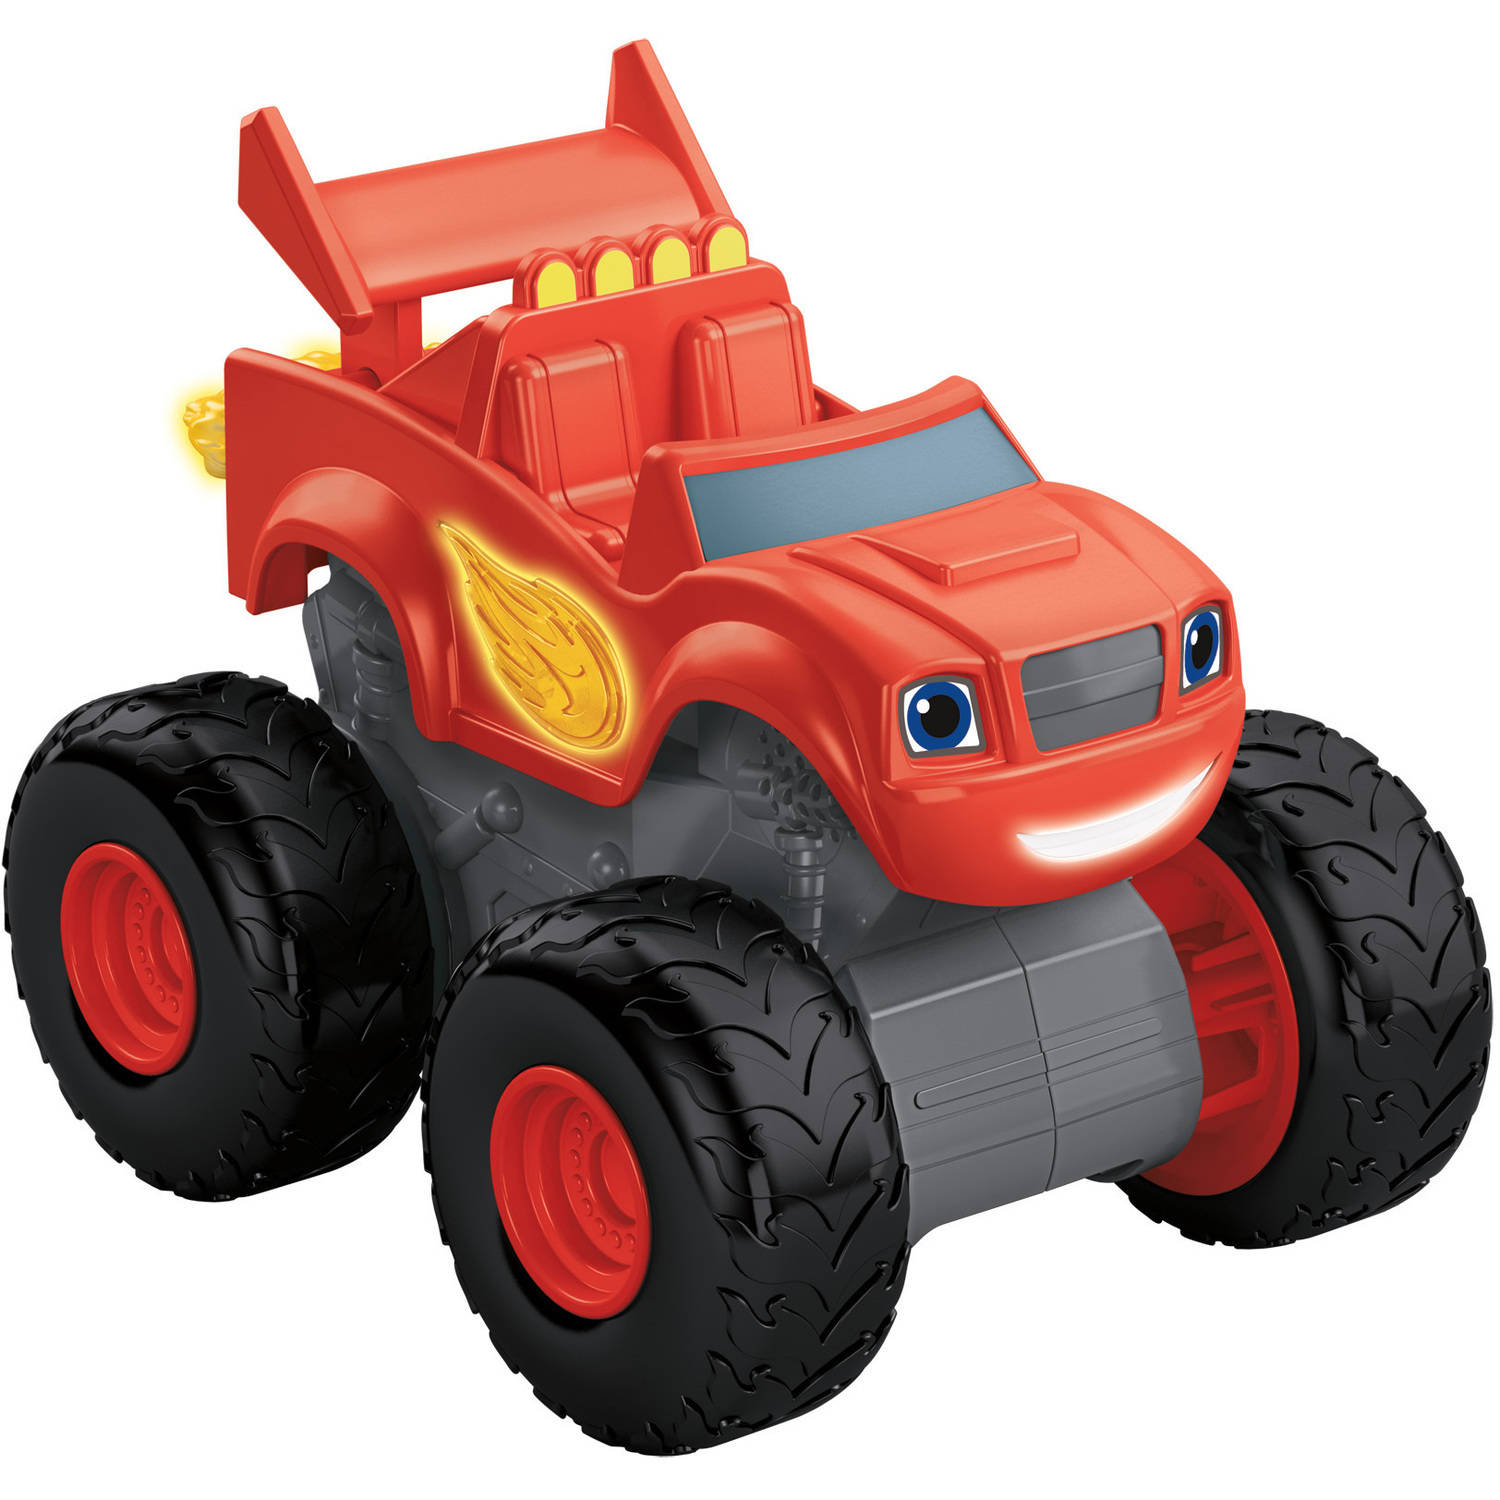 Nickelodeon Blaze and the Monster Machines Super Stunts Blaze by FISHER PRICE